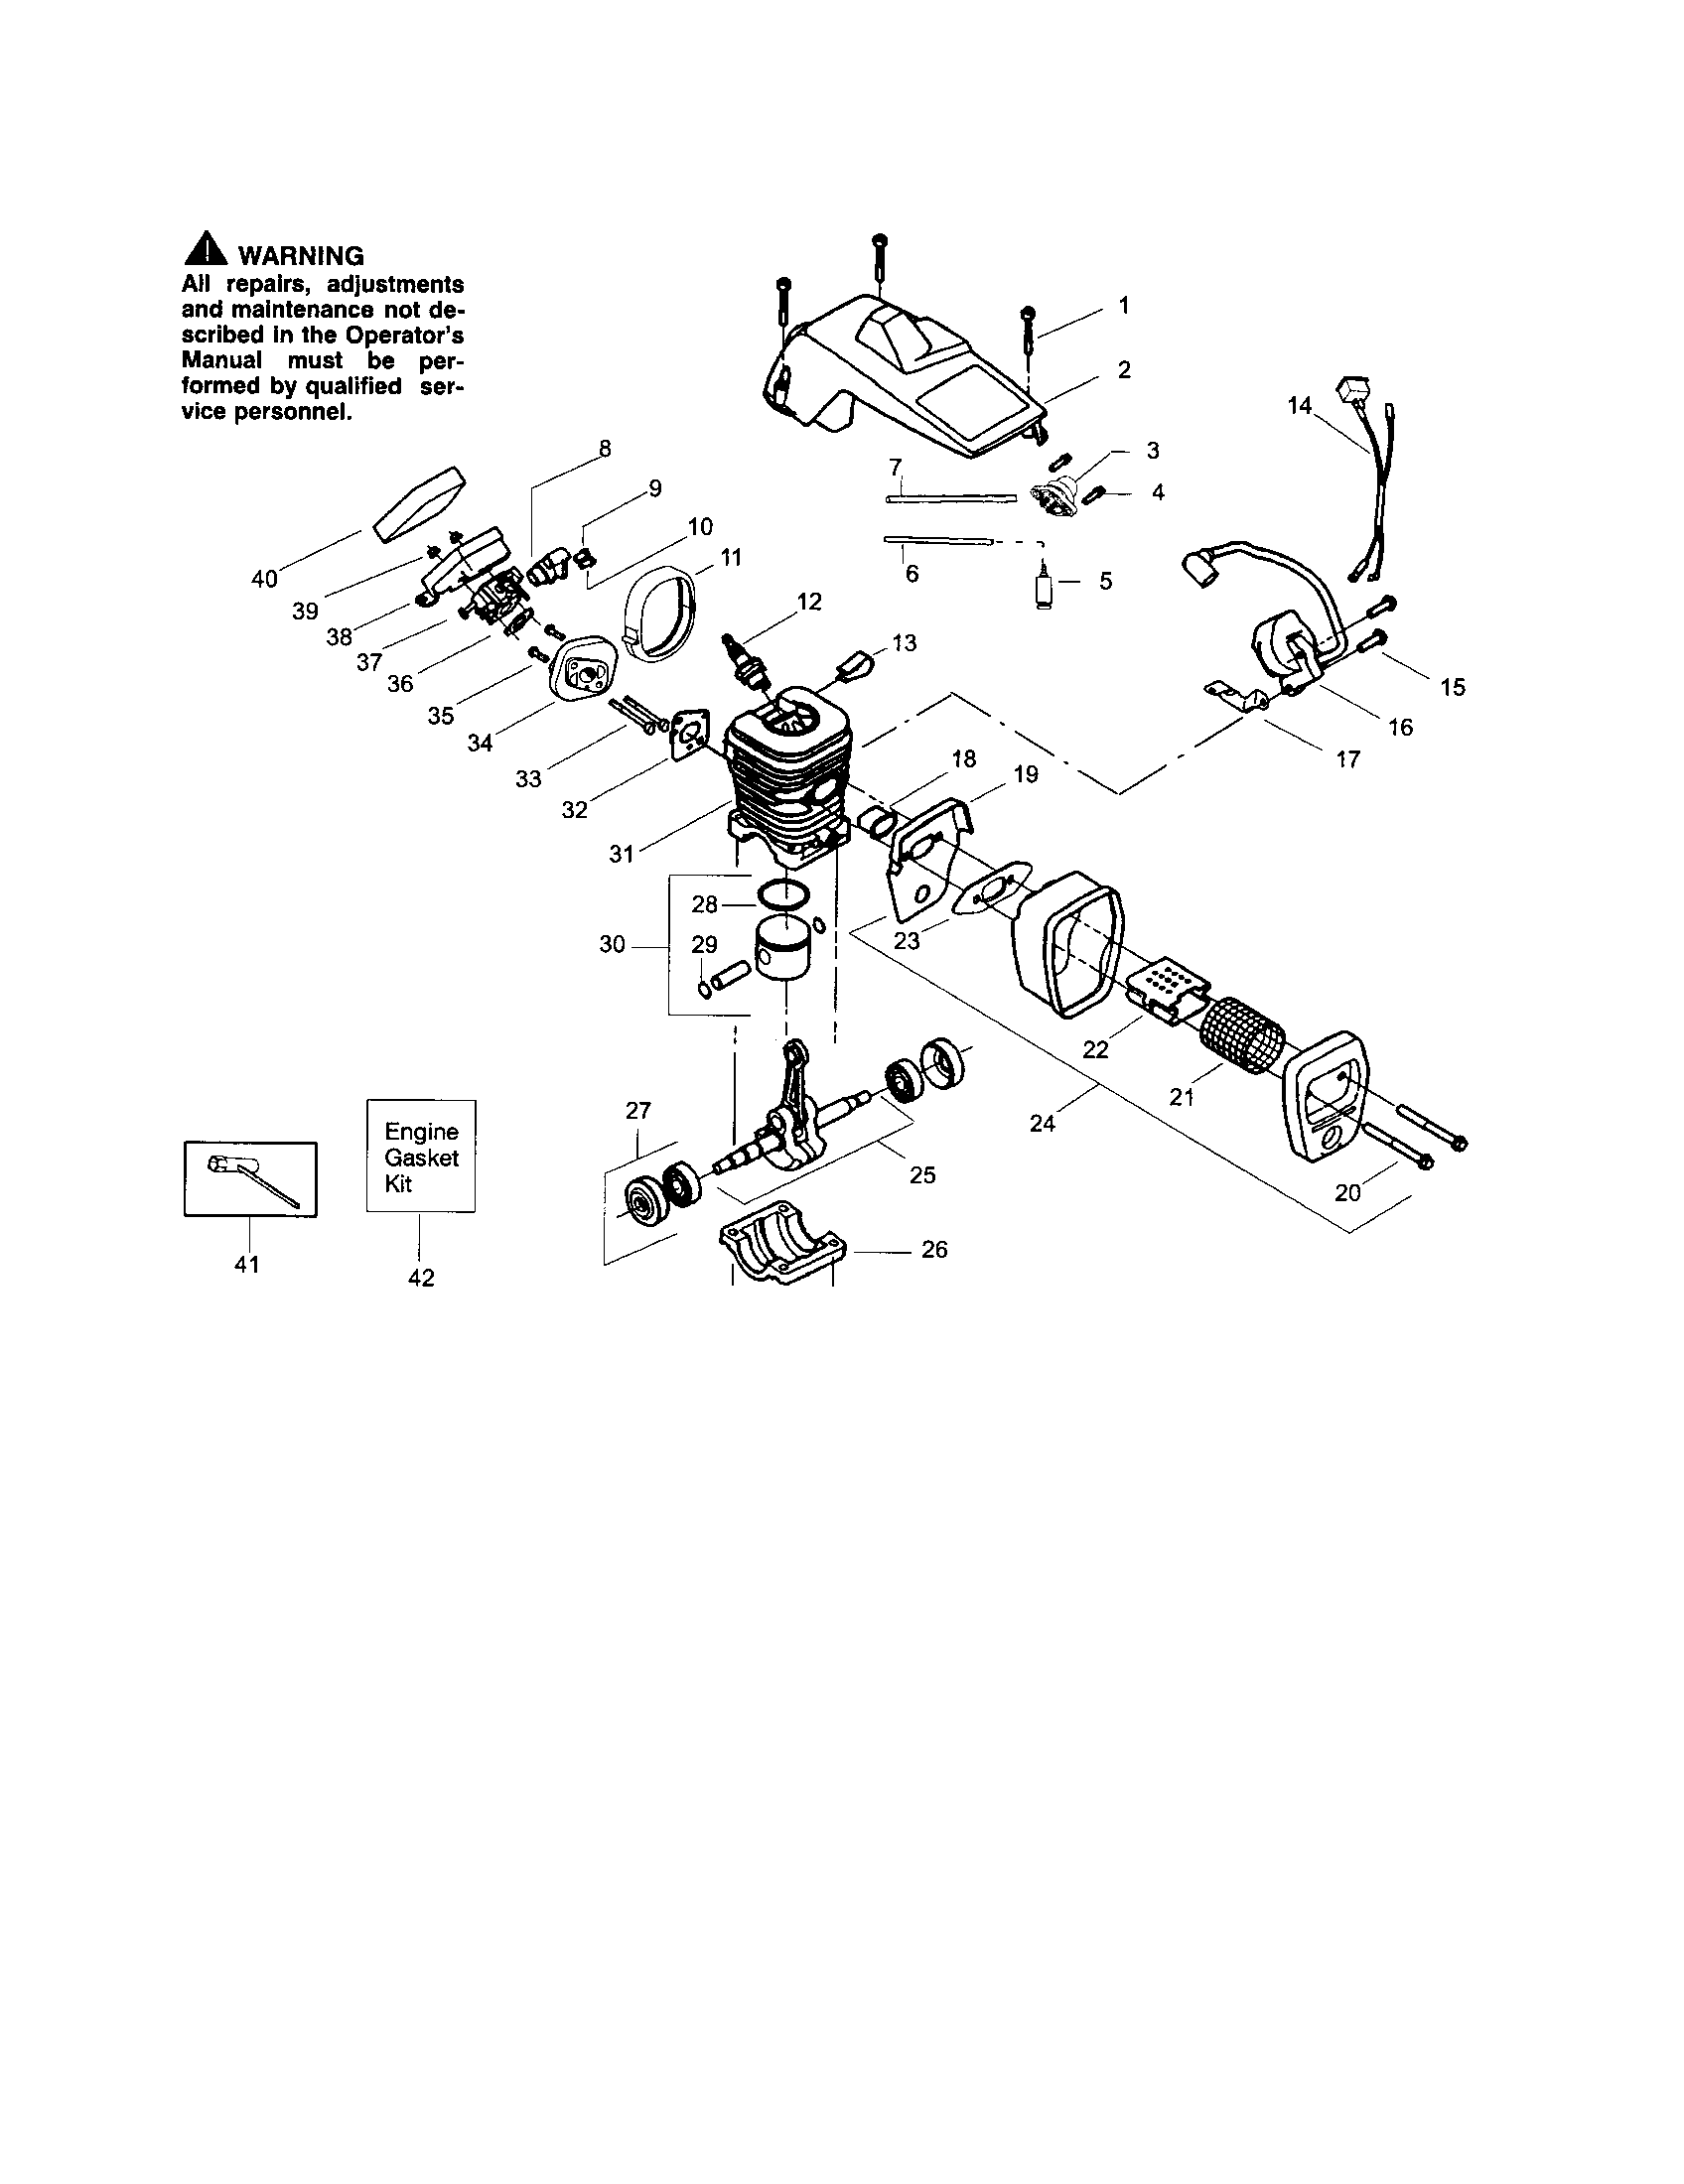 craftsman chainsaw carburetor diagram 98 jeep grand cherokee stereo wiring chain saw wt 391 5300697 parts